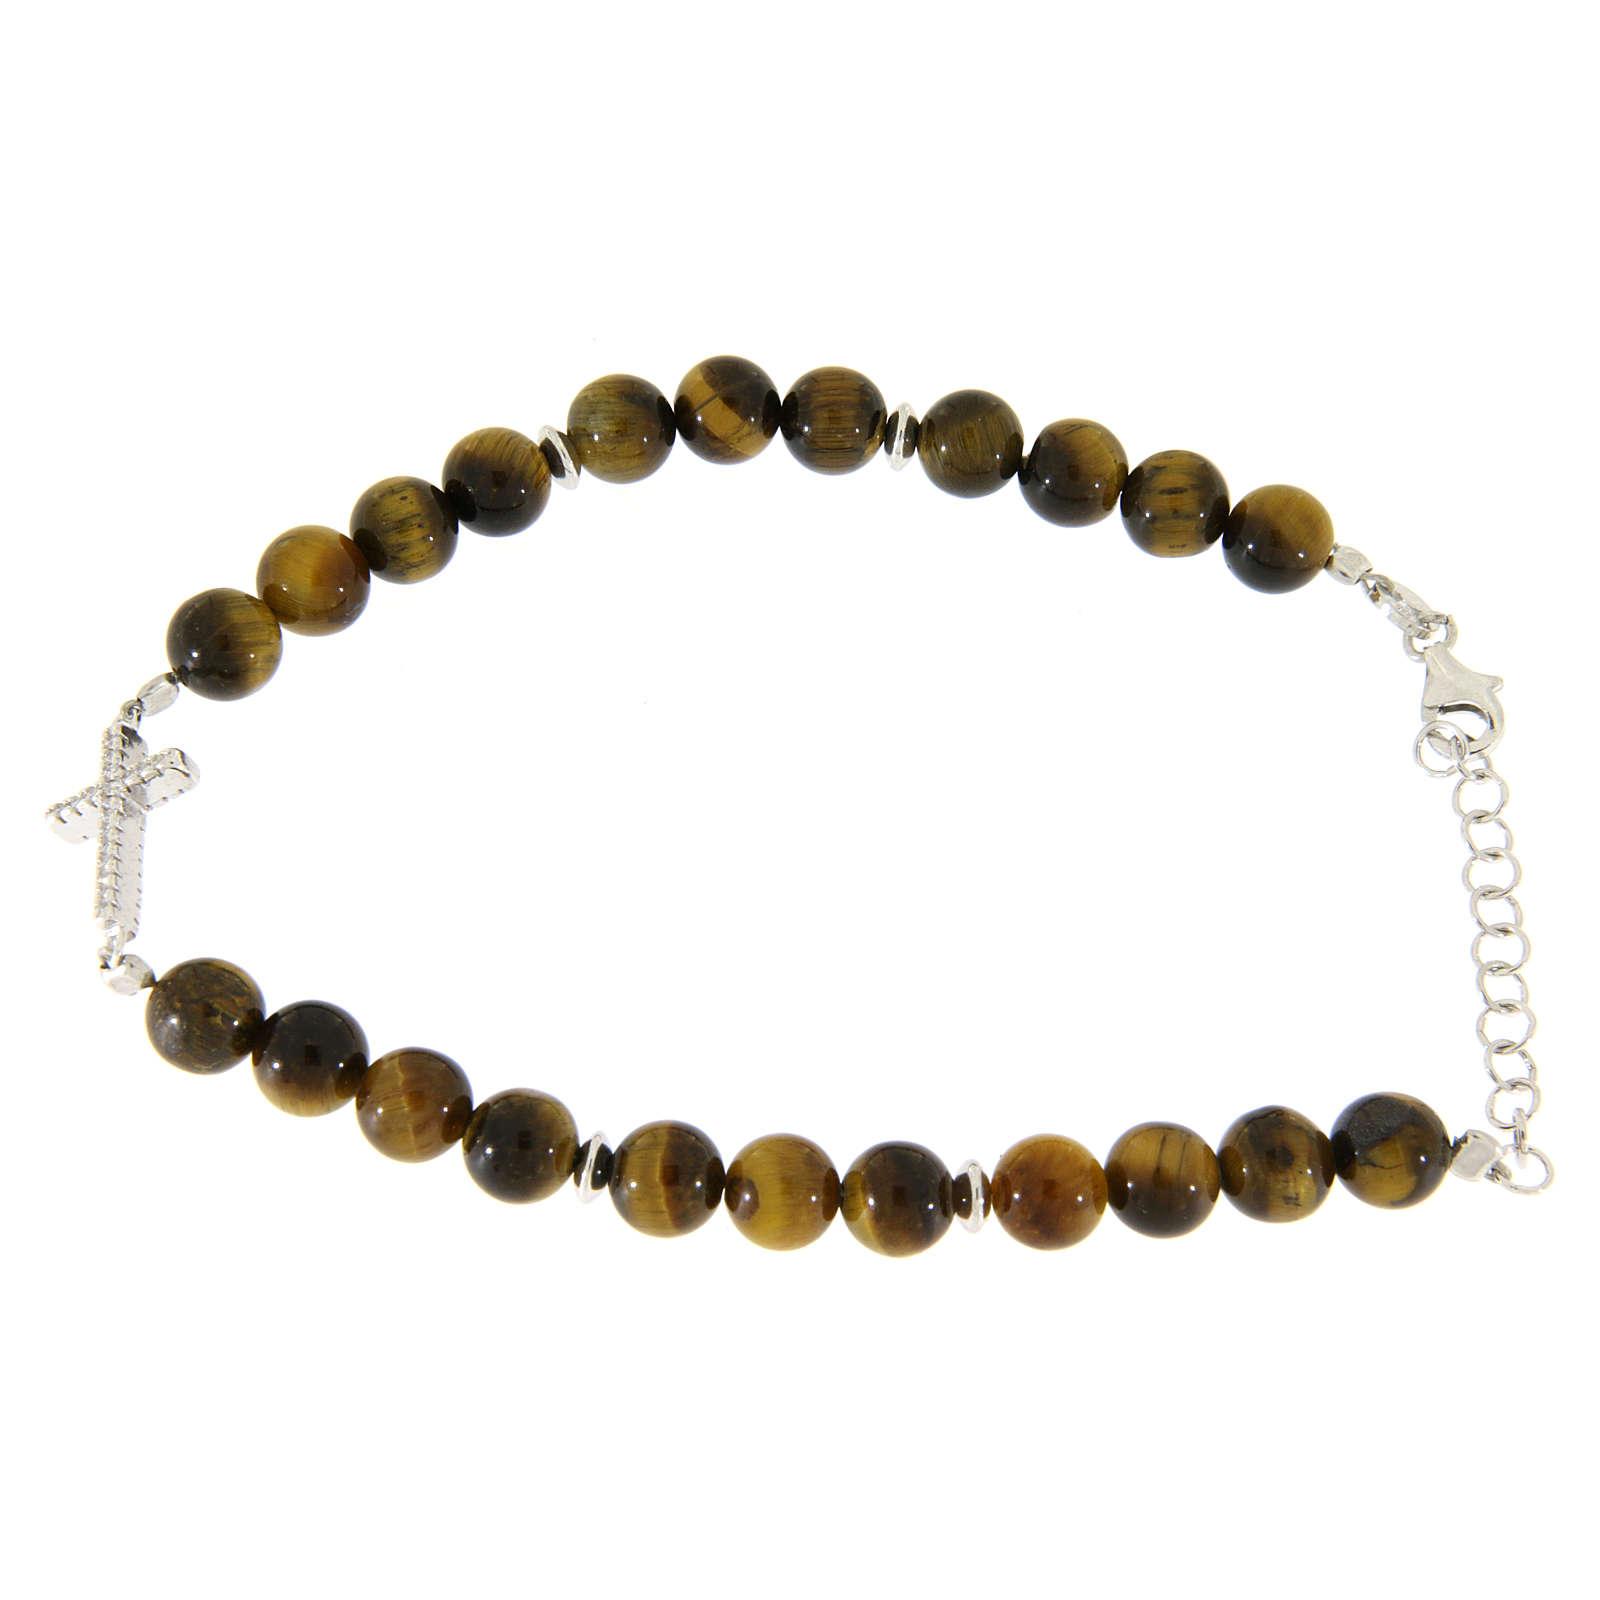 Bracelet with smooth tiger's eye balls, a cross with white zircons in 925 sterling silver 4